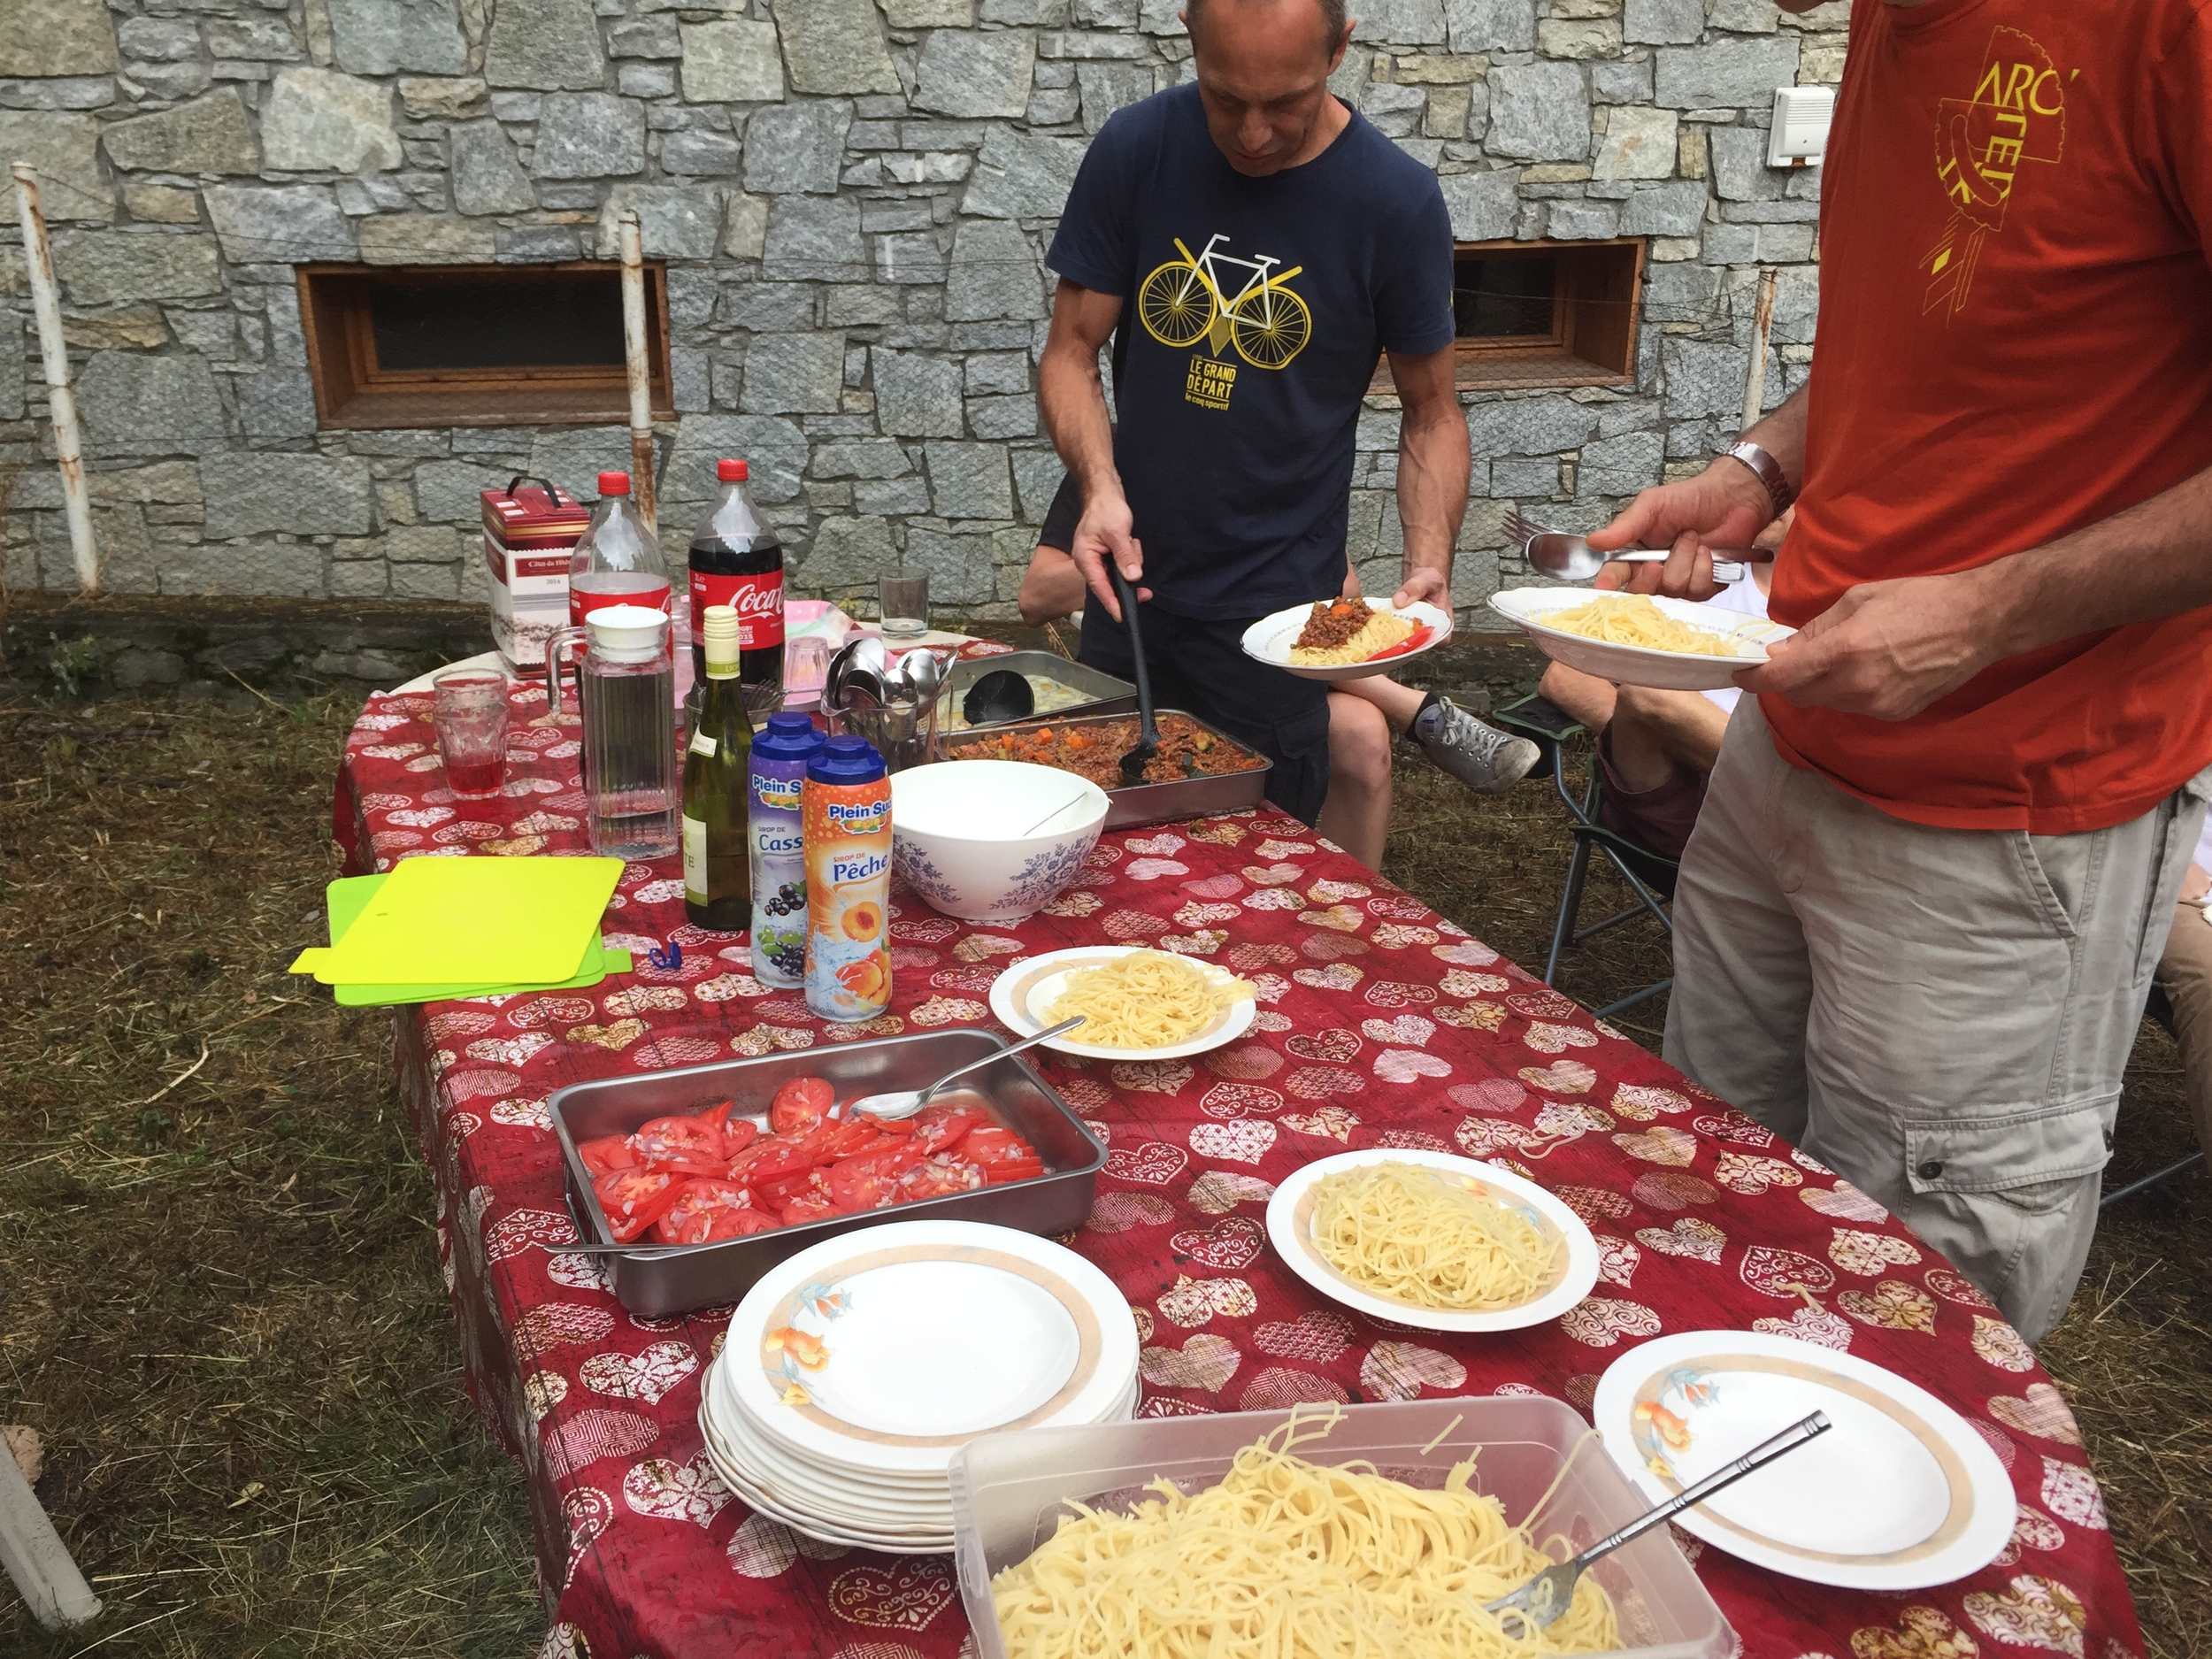 Carbo loading at our pasta party